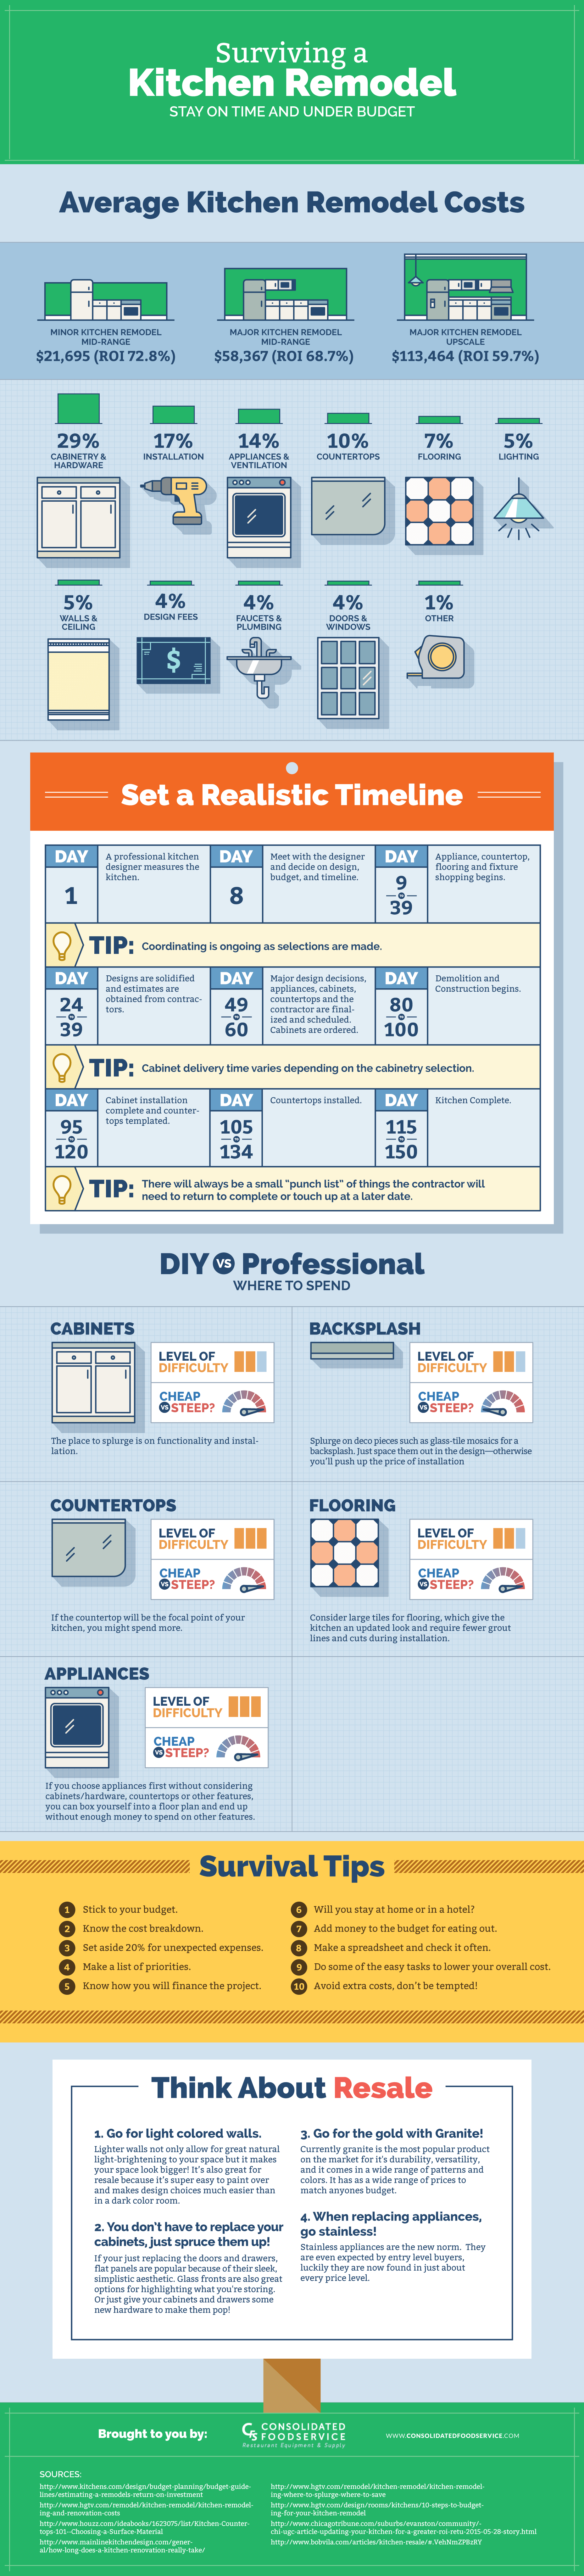 Surviving a Kitchen Remodel Infographic